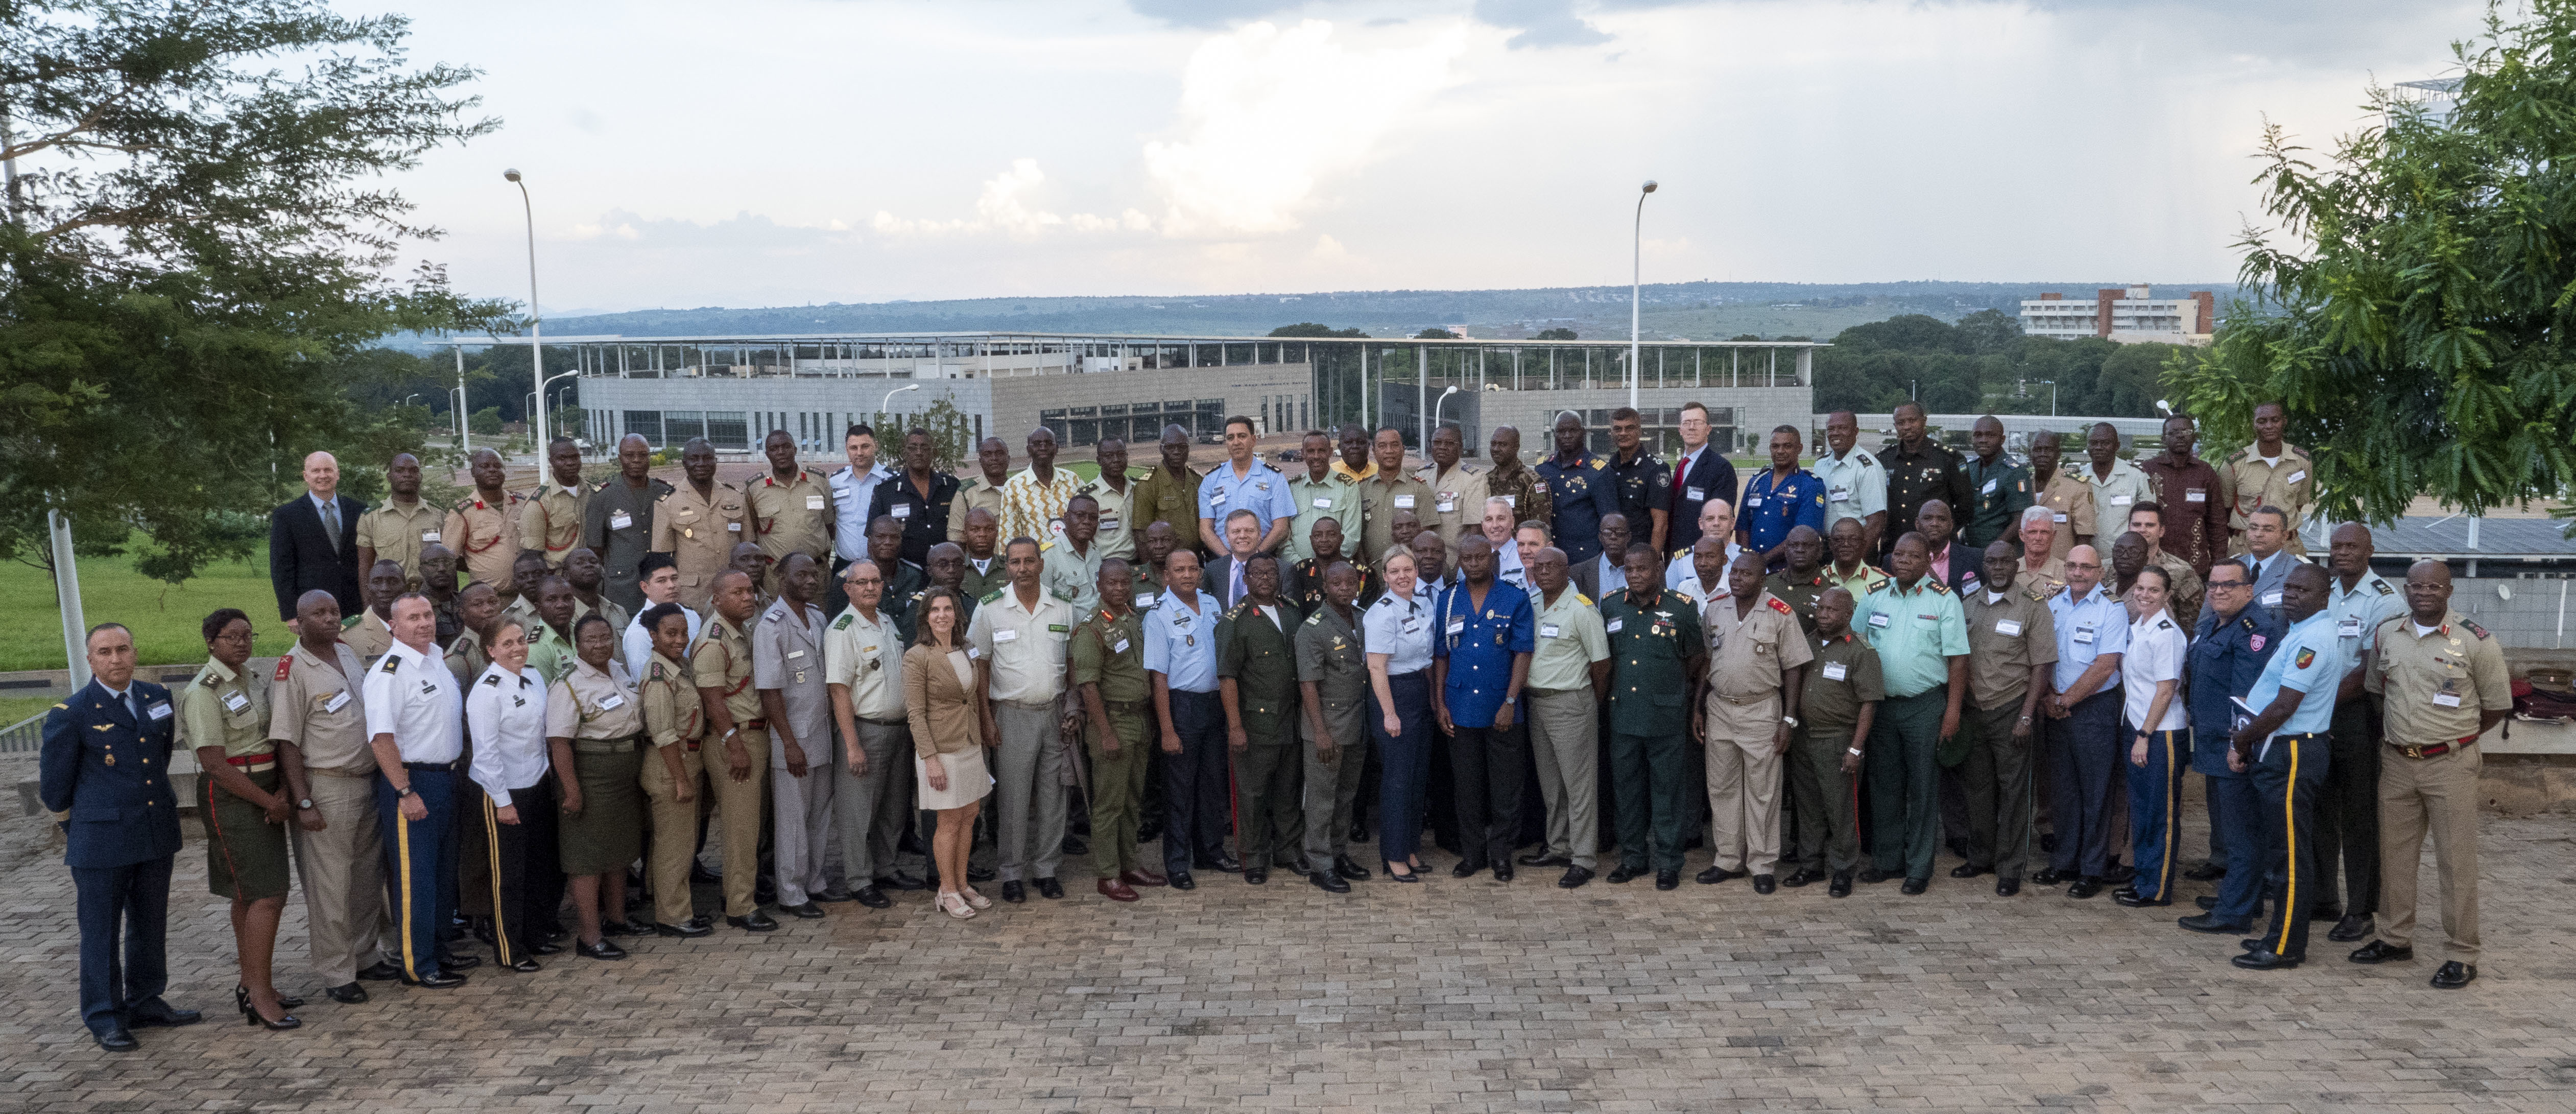 A group photo of the delegates to Accountability Colloquium VI in Lilongwe, Malawi, February 27, 2019.